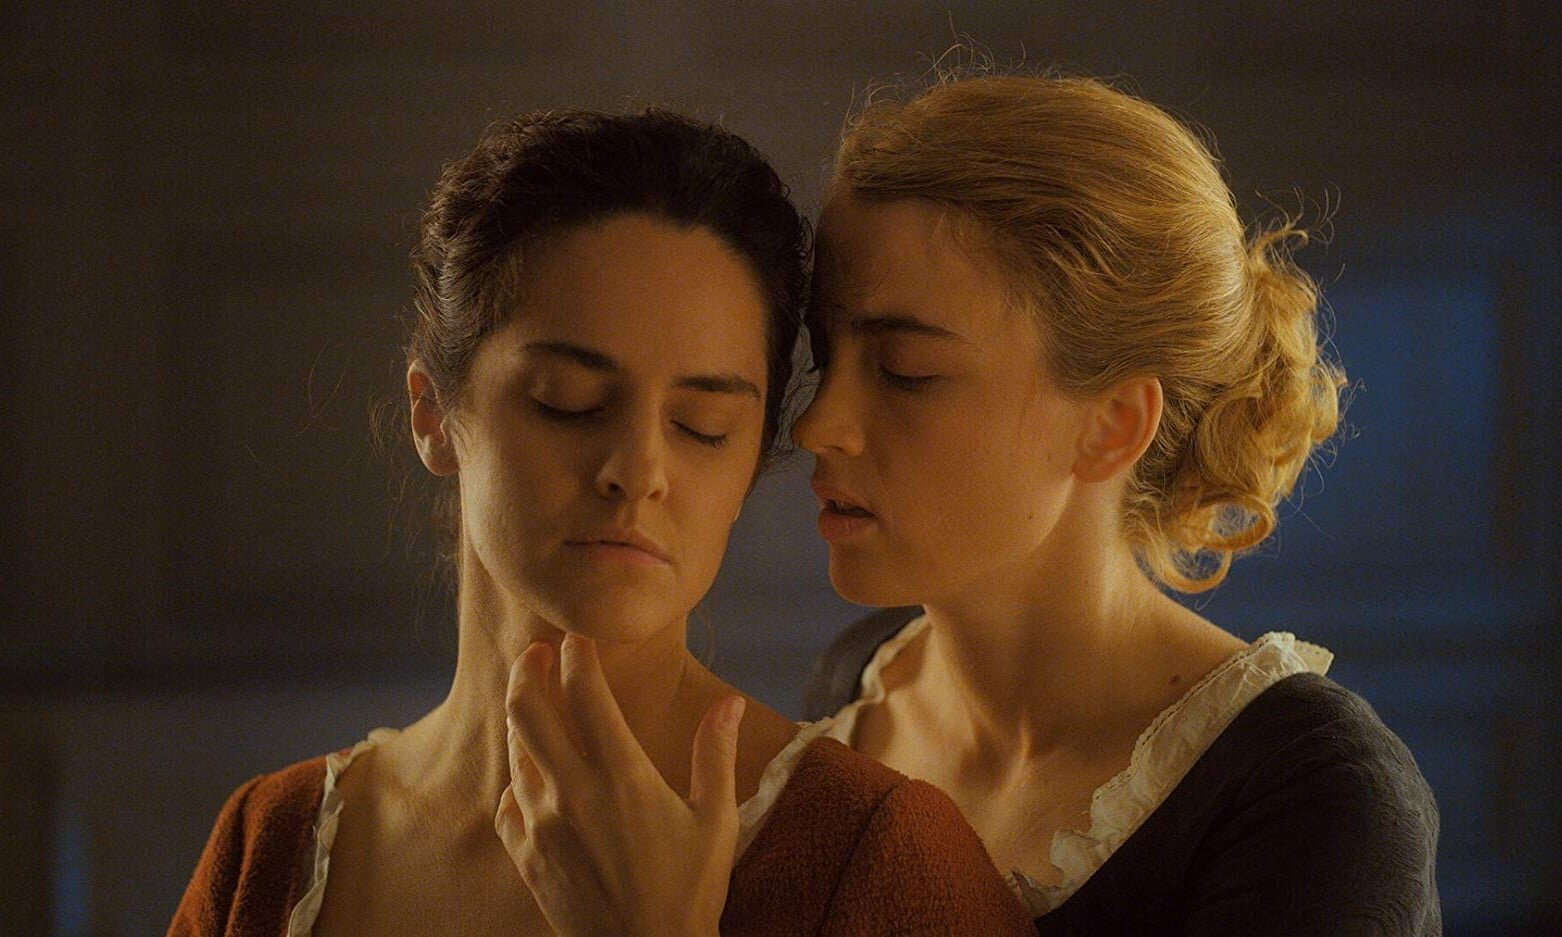 Noémie Merlant and Adèle Haenel in Portrait of a Lady on Fire, photo by Claire Mathon, courtesy of Neon & Lilies Films